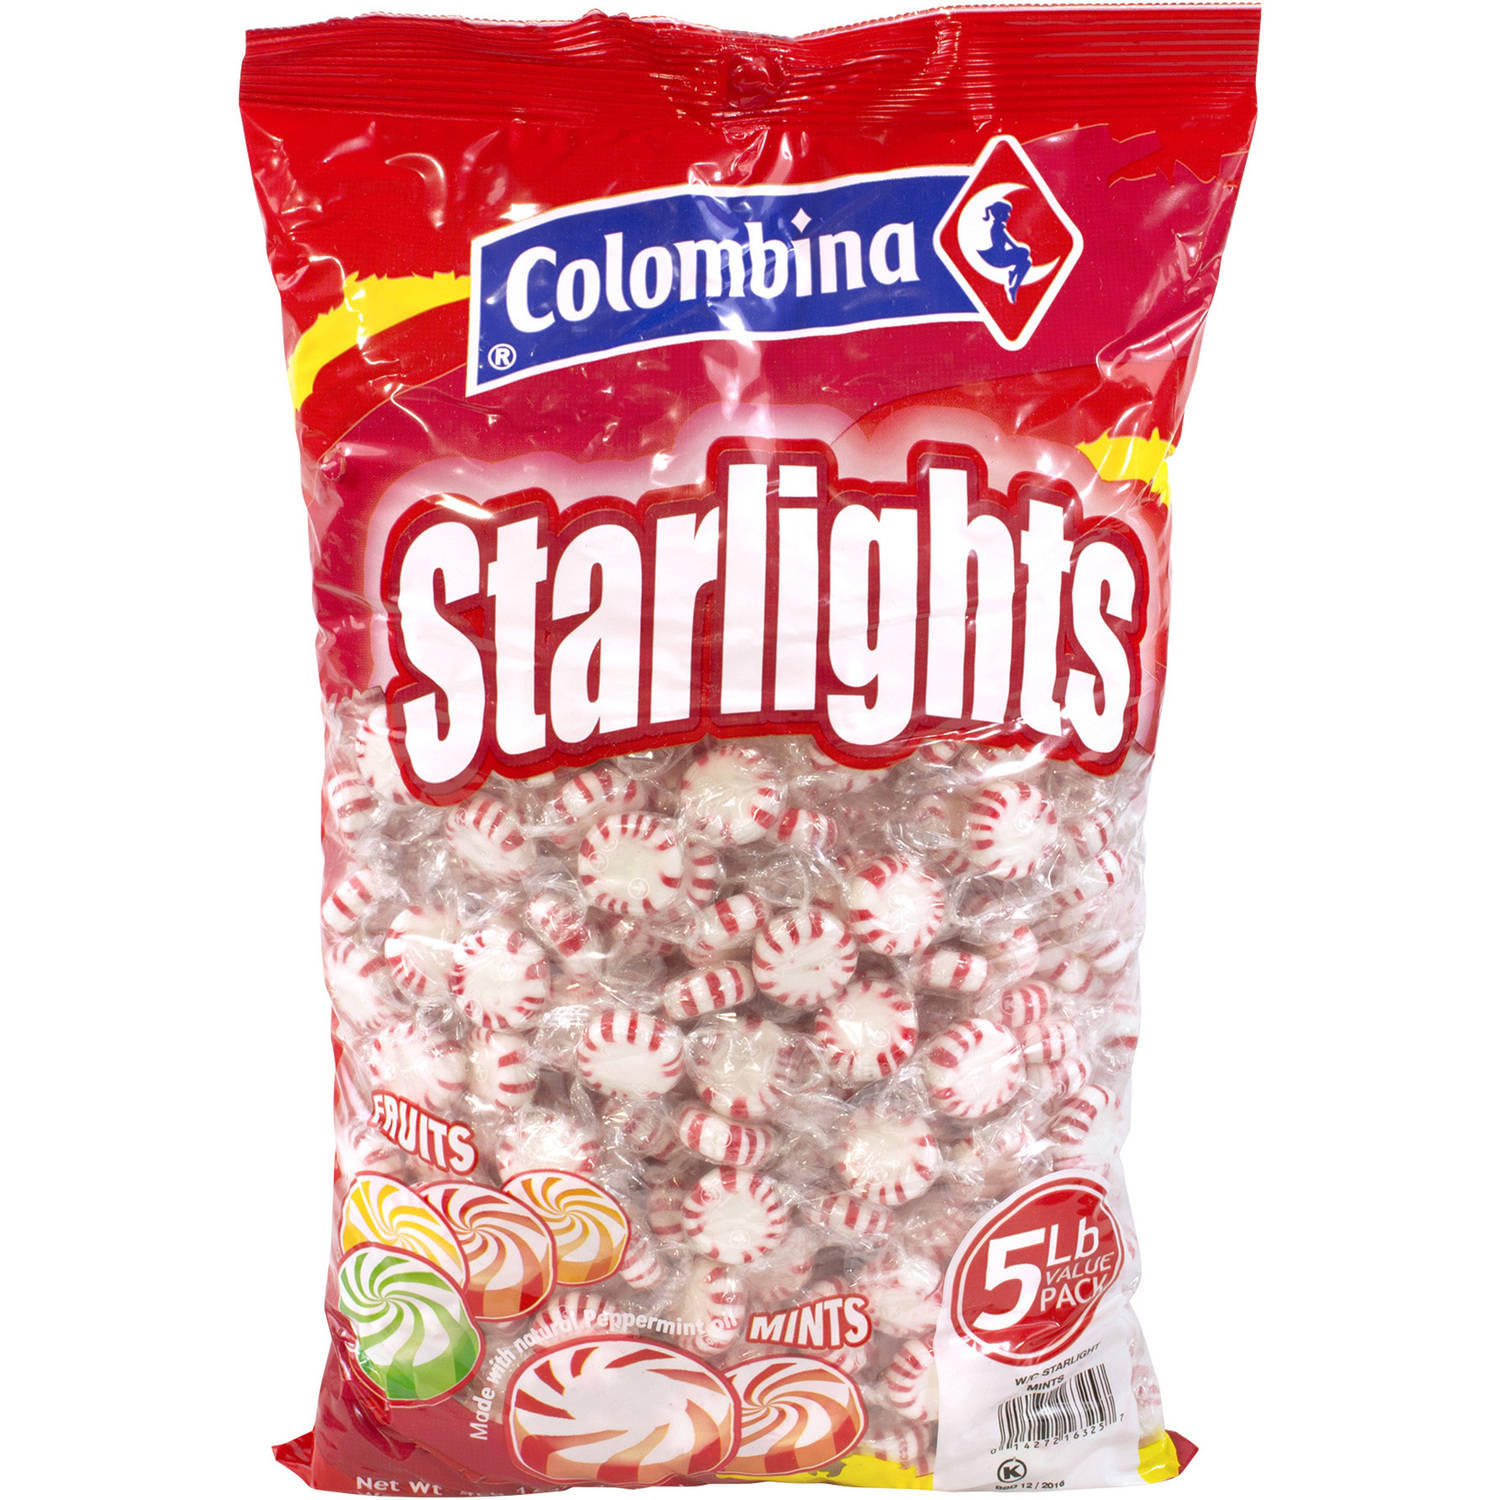 Colombina Peppermint Starlight Mints, 5 lbs by